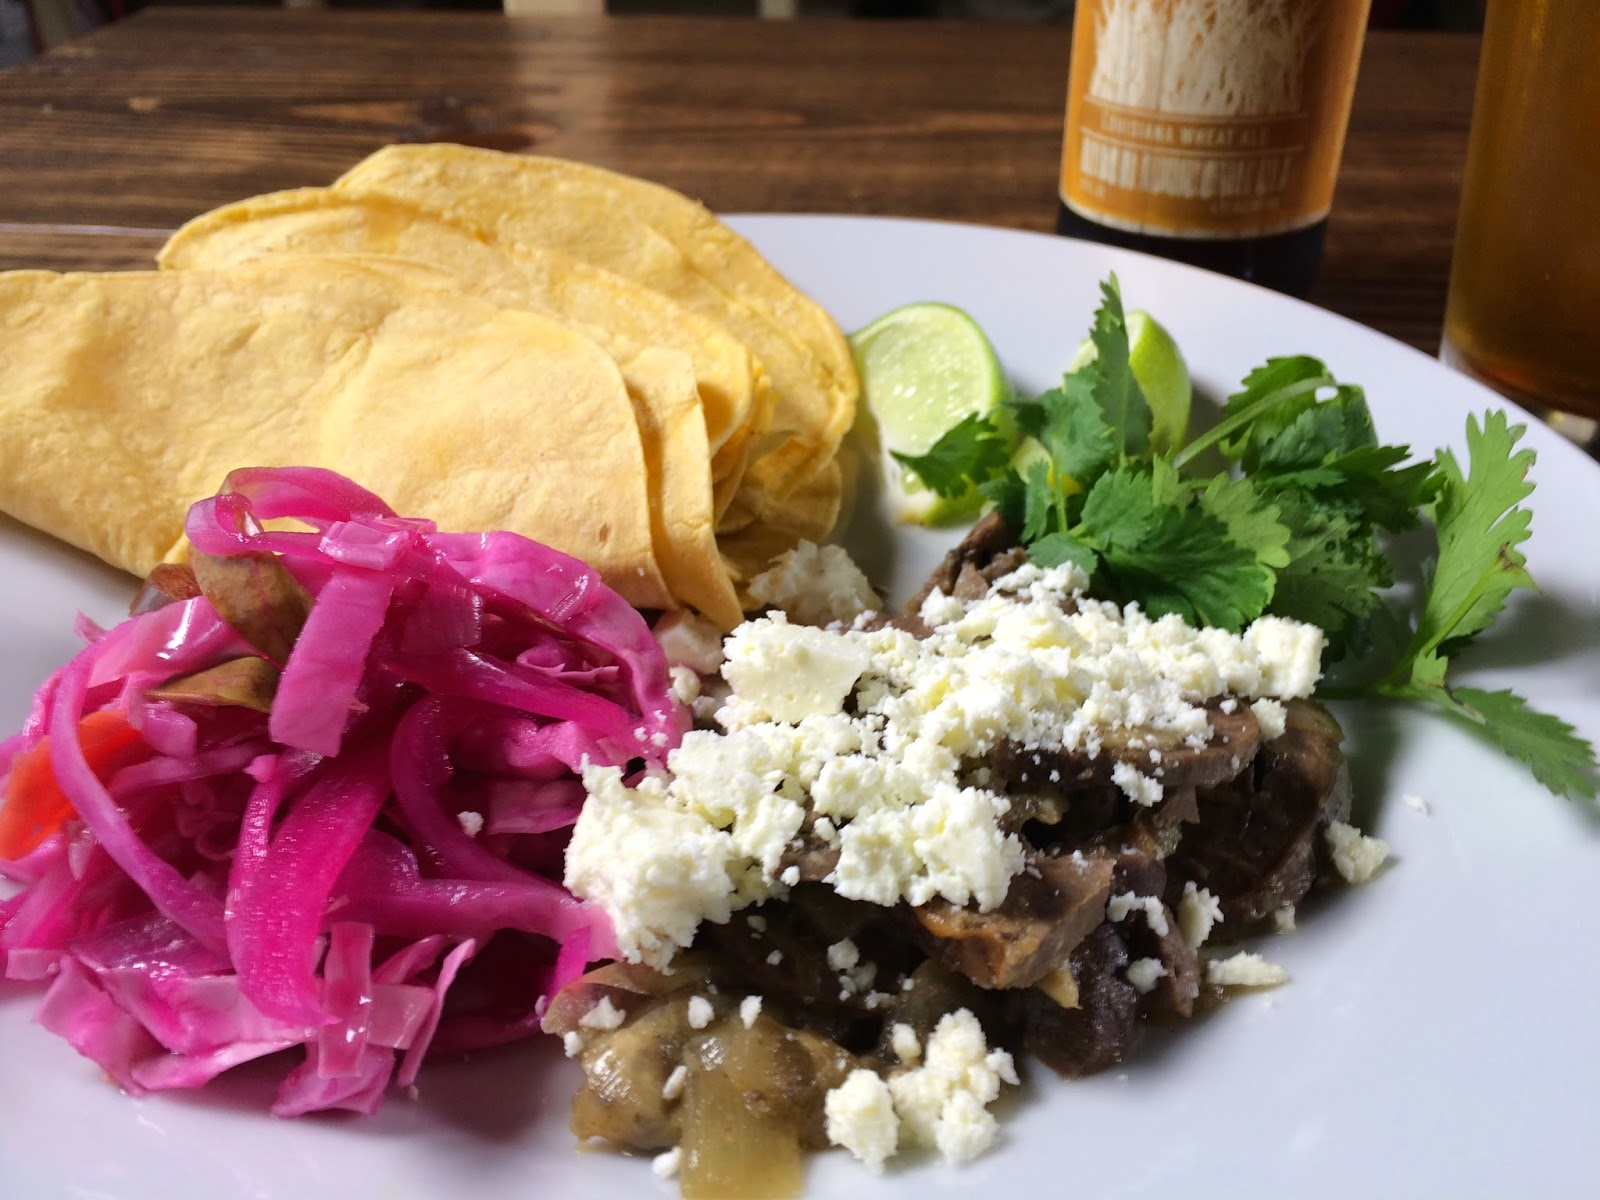 Braised Heart Taco: Slow Cooked Lamb Heart, Cilantro, Curtido, Lime, and Feta. Pictured with a Parish Brewing Co. Canebrake.